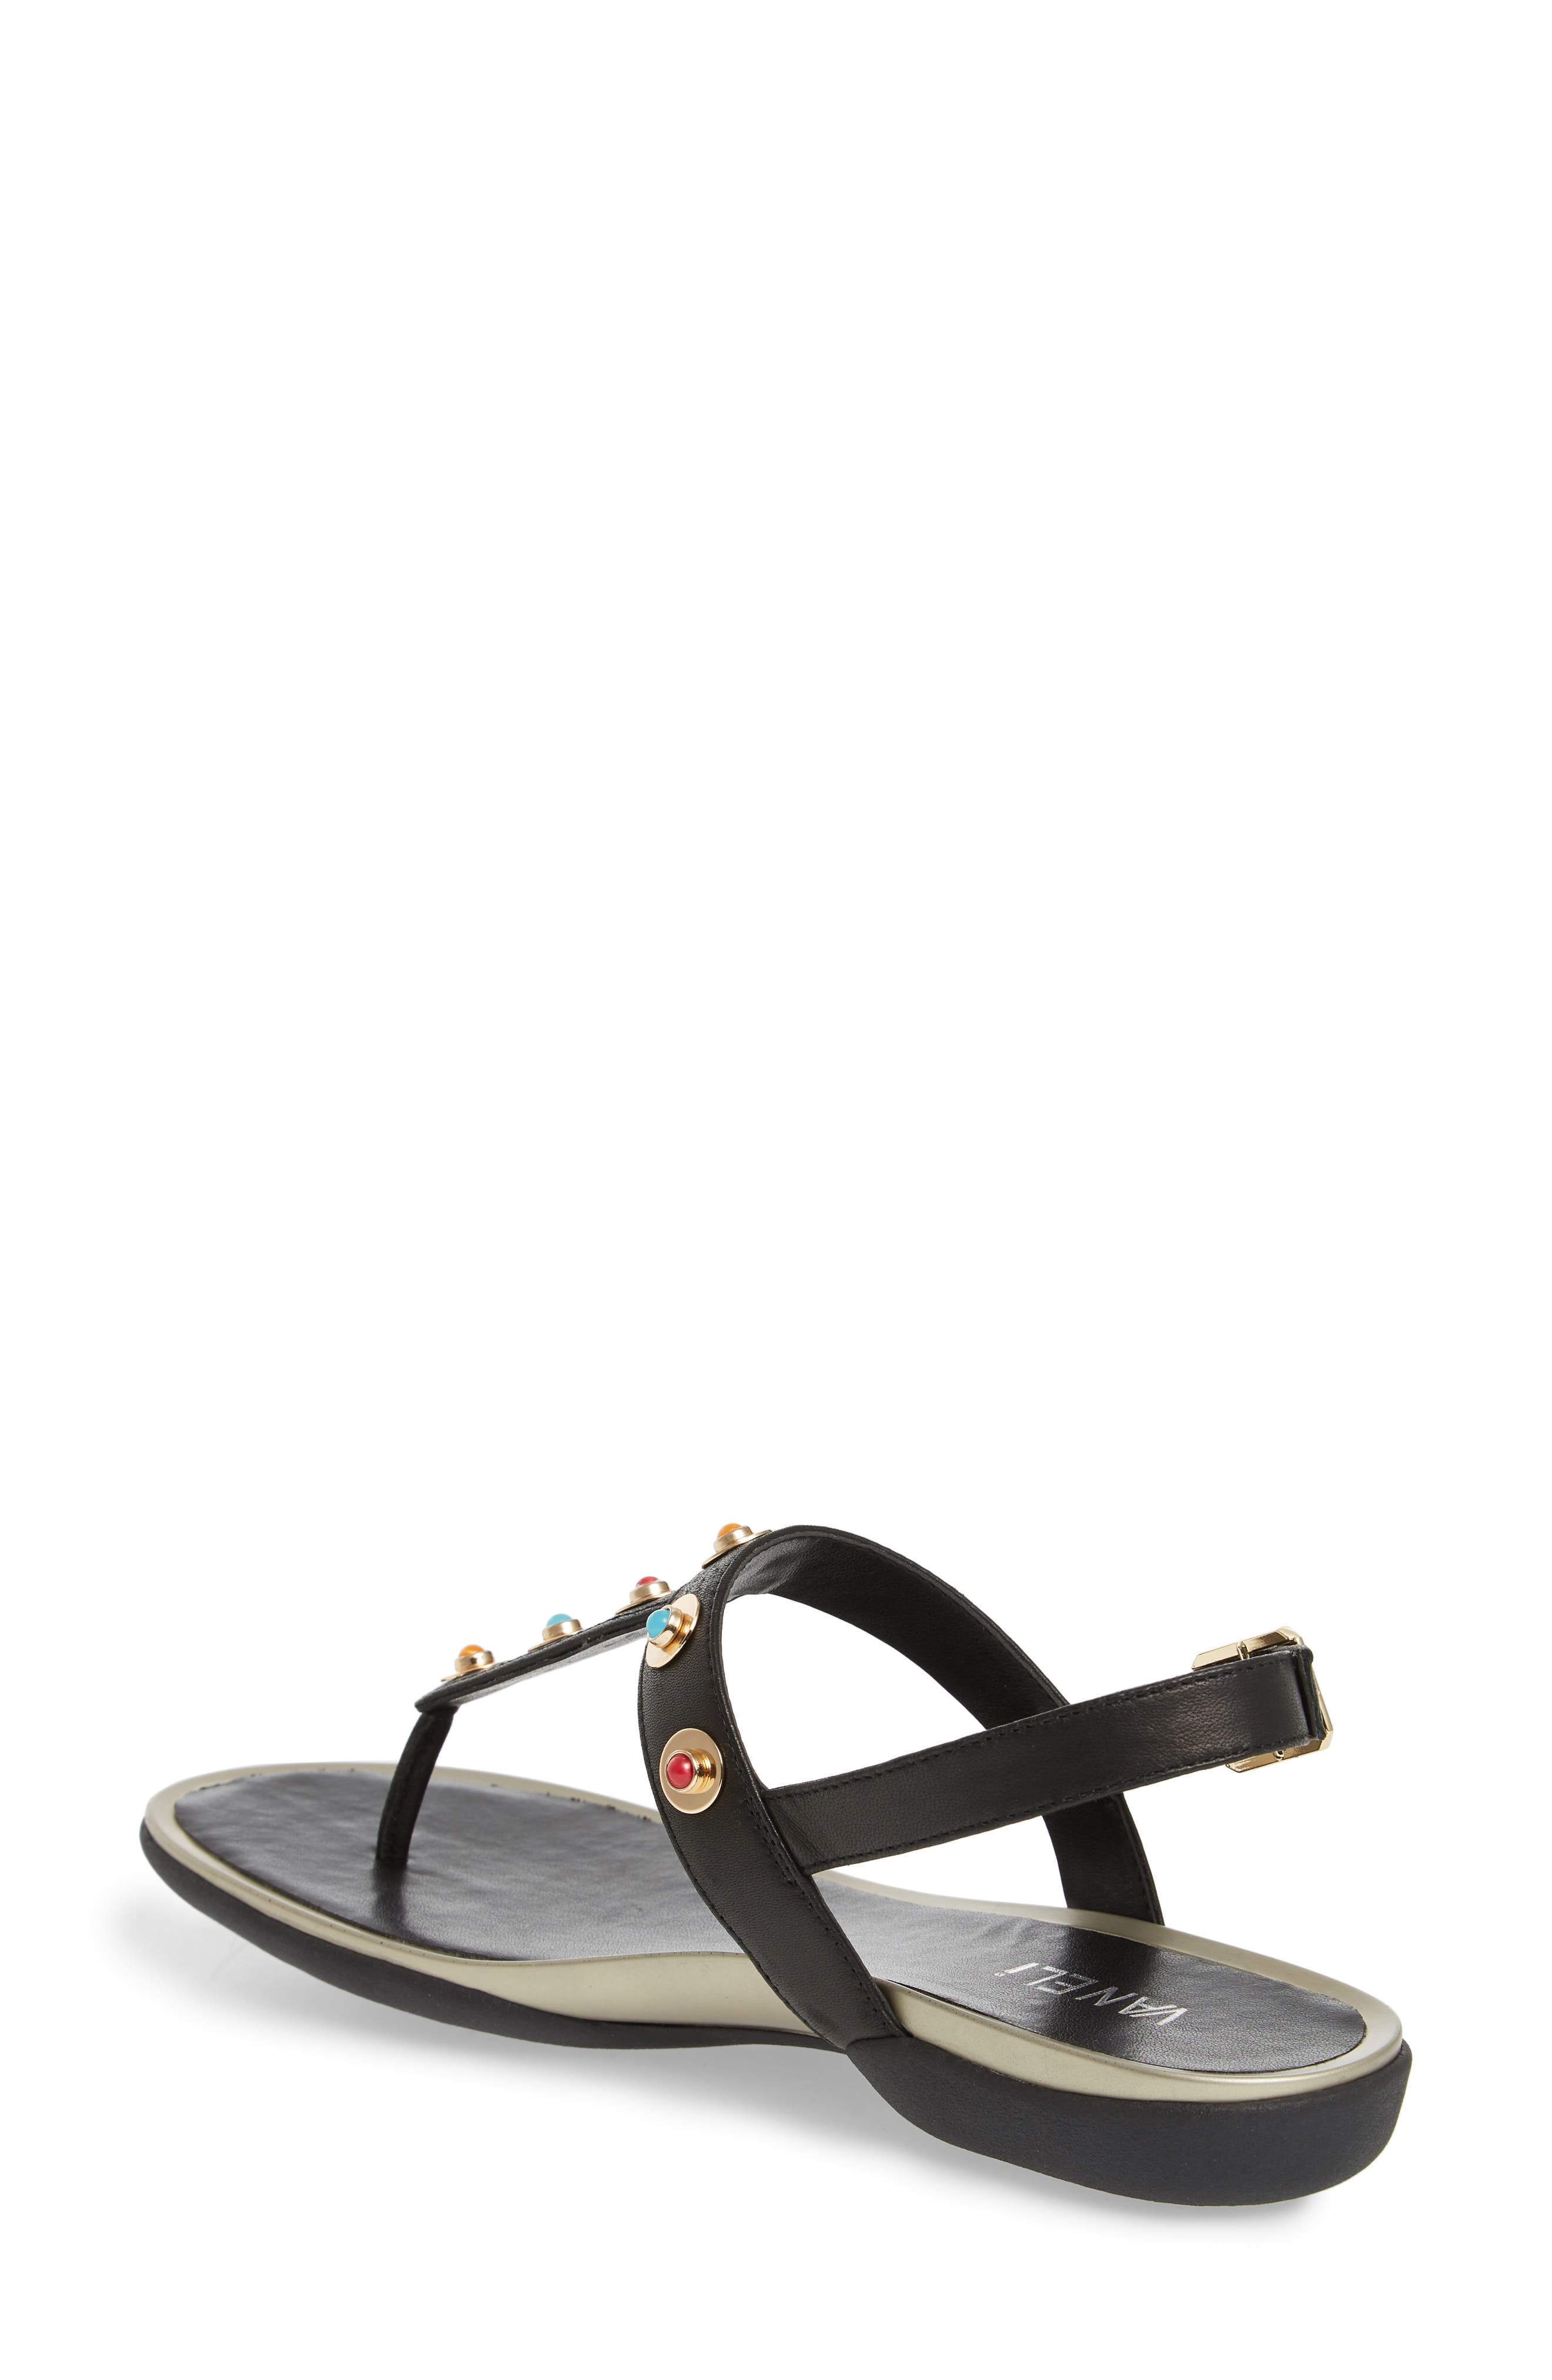 Wally Studded T-Strap Sandal,                             Alternate thumbnail 2, color,                             BLACK LEATHER